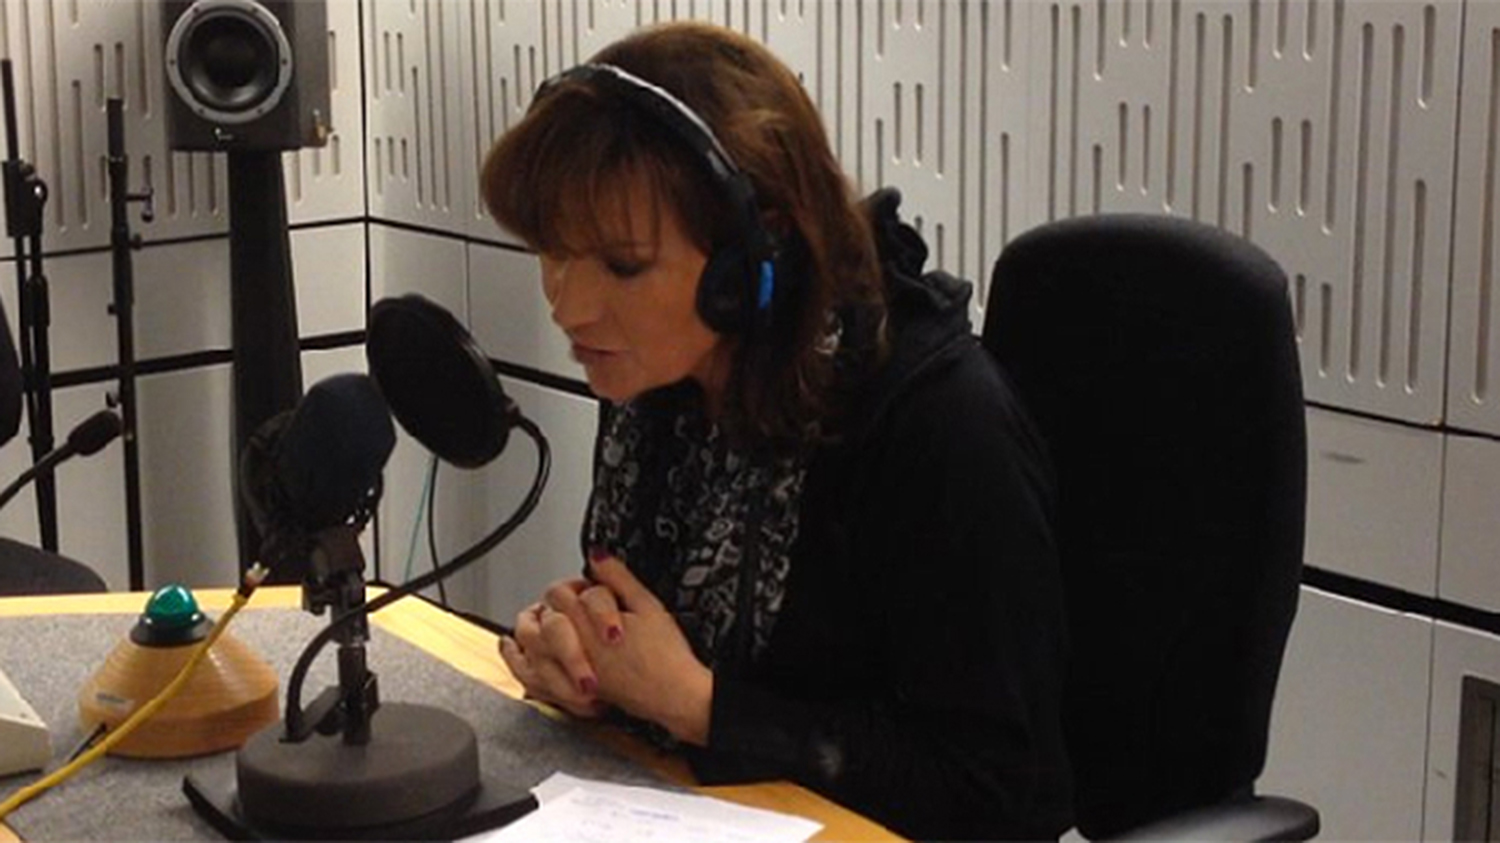 Lorraine leans over and speaks into a microphone. She has headphones on and is wearing a dark top.